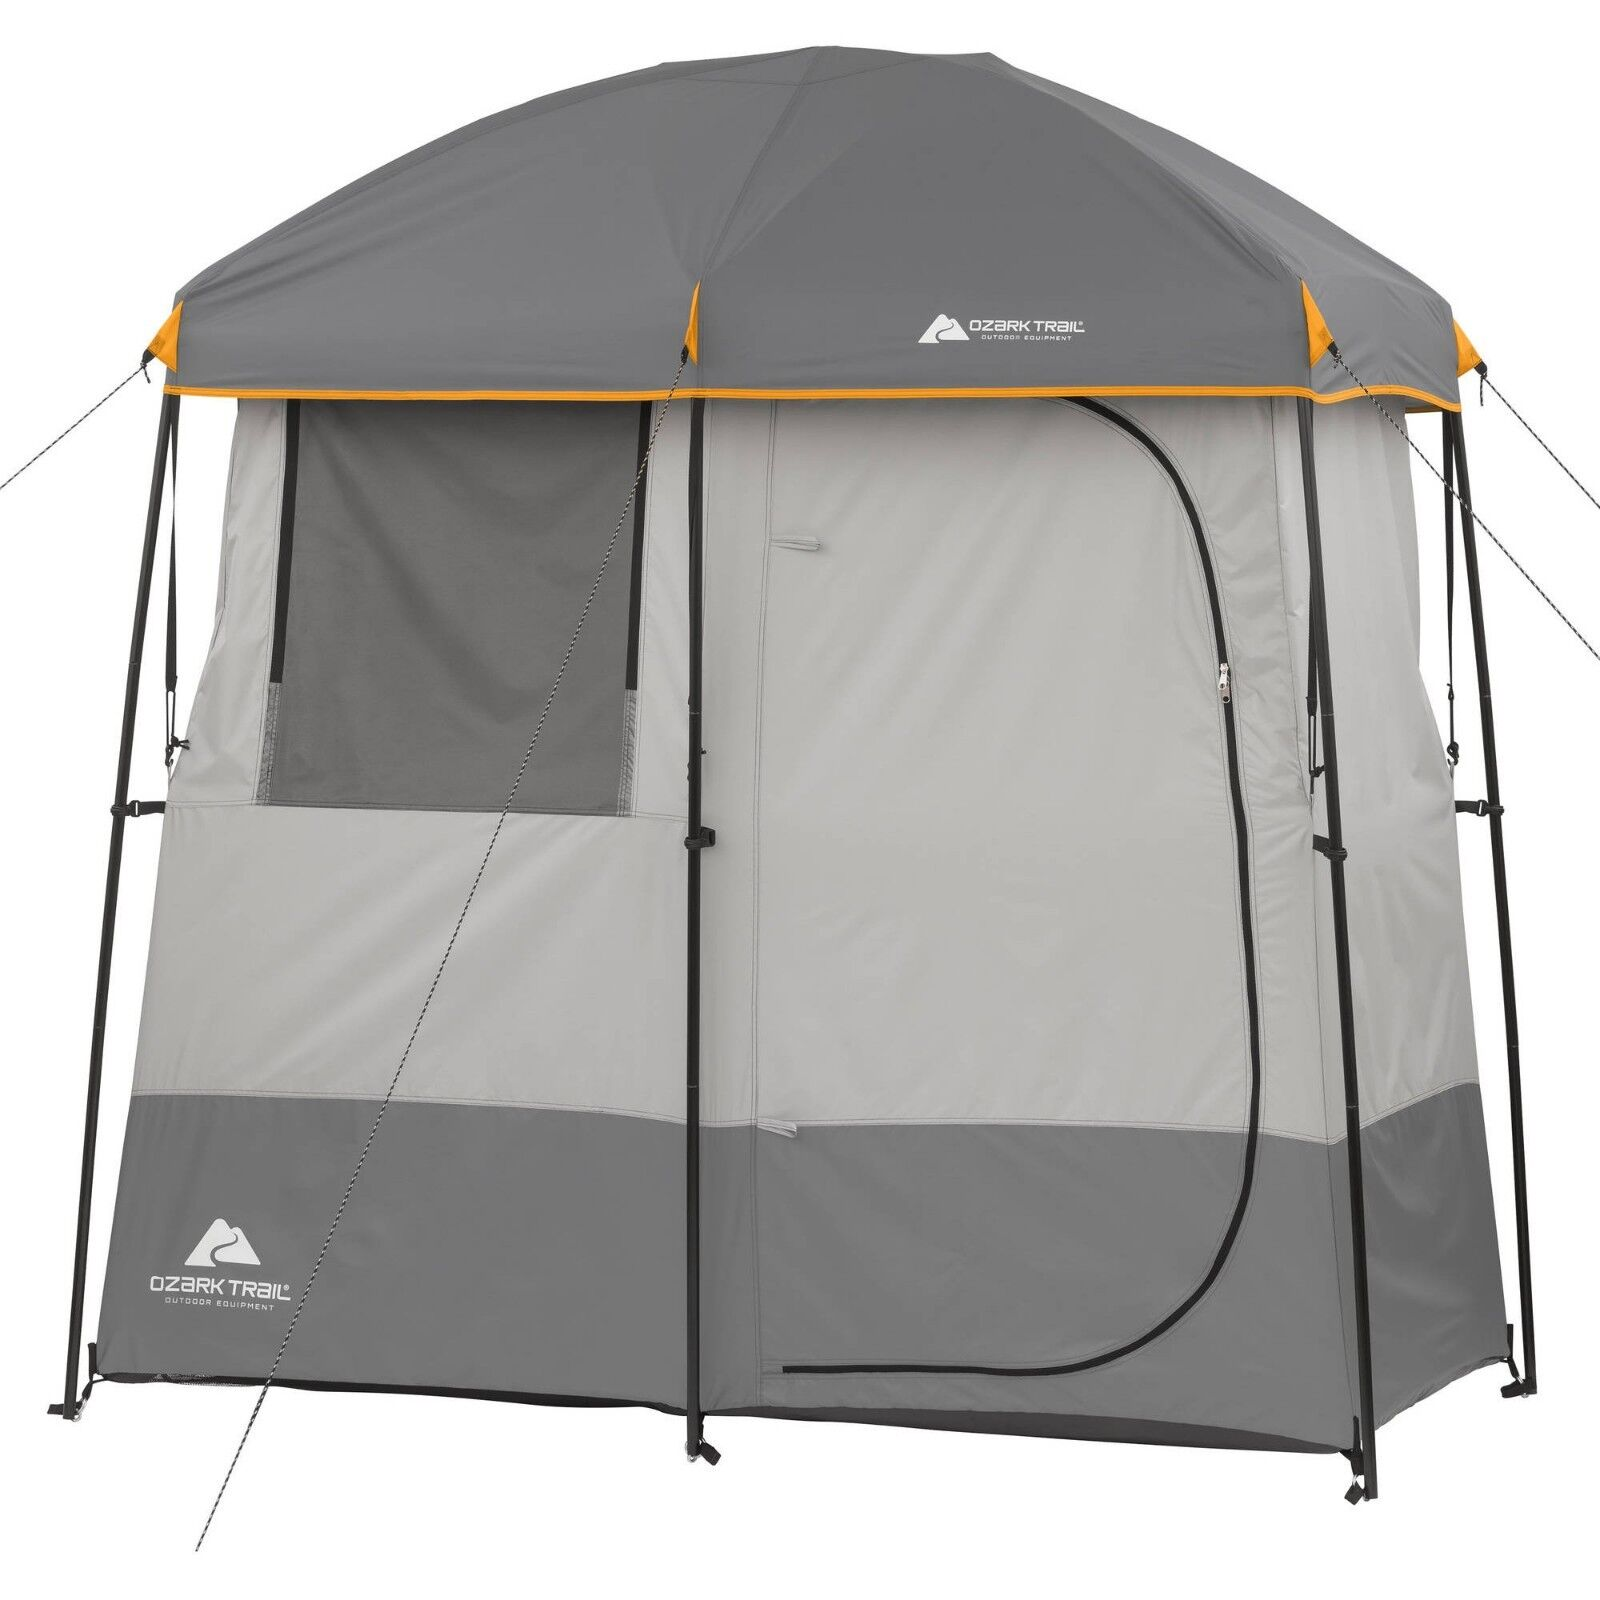 c34cf5526f746 Solar Heated Shower Toilet Tent 2-Room Instant Camping Cabin Hiking Ozark  Trail ovbmwr7686-Tents